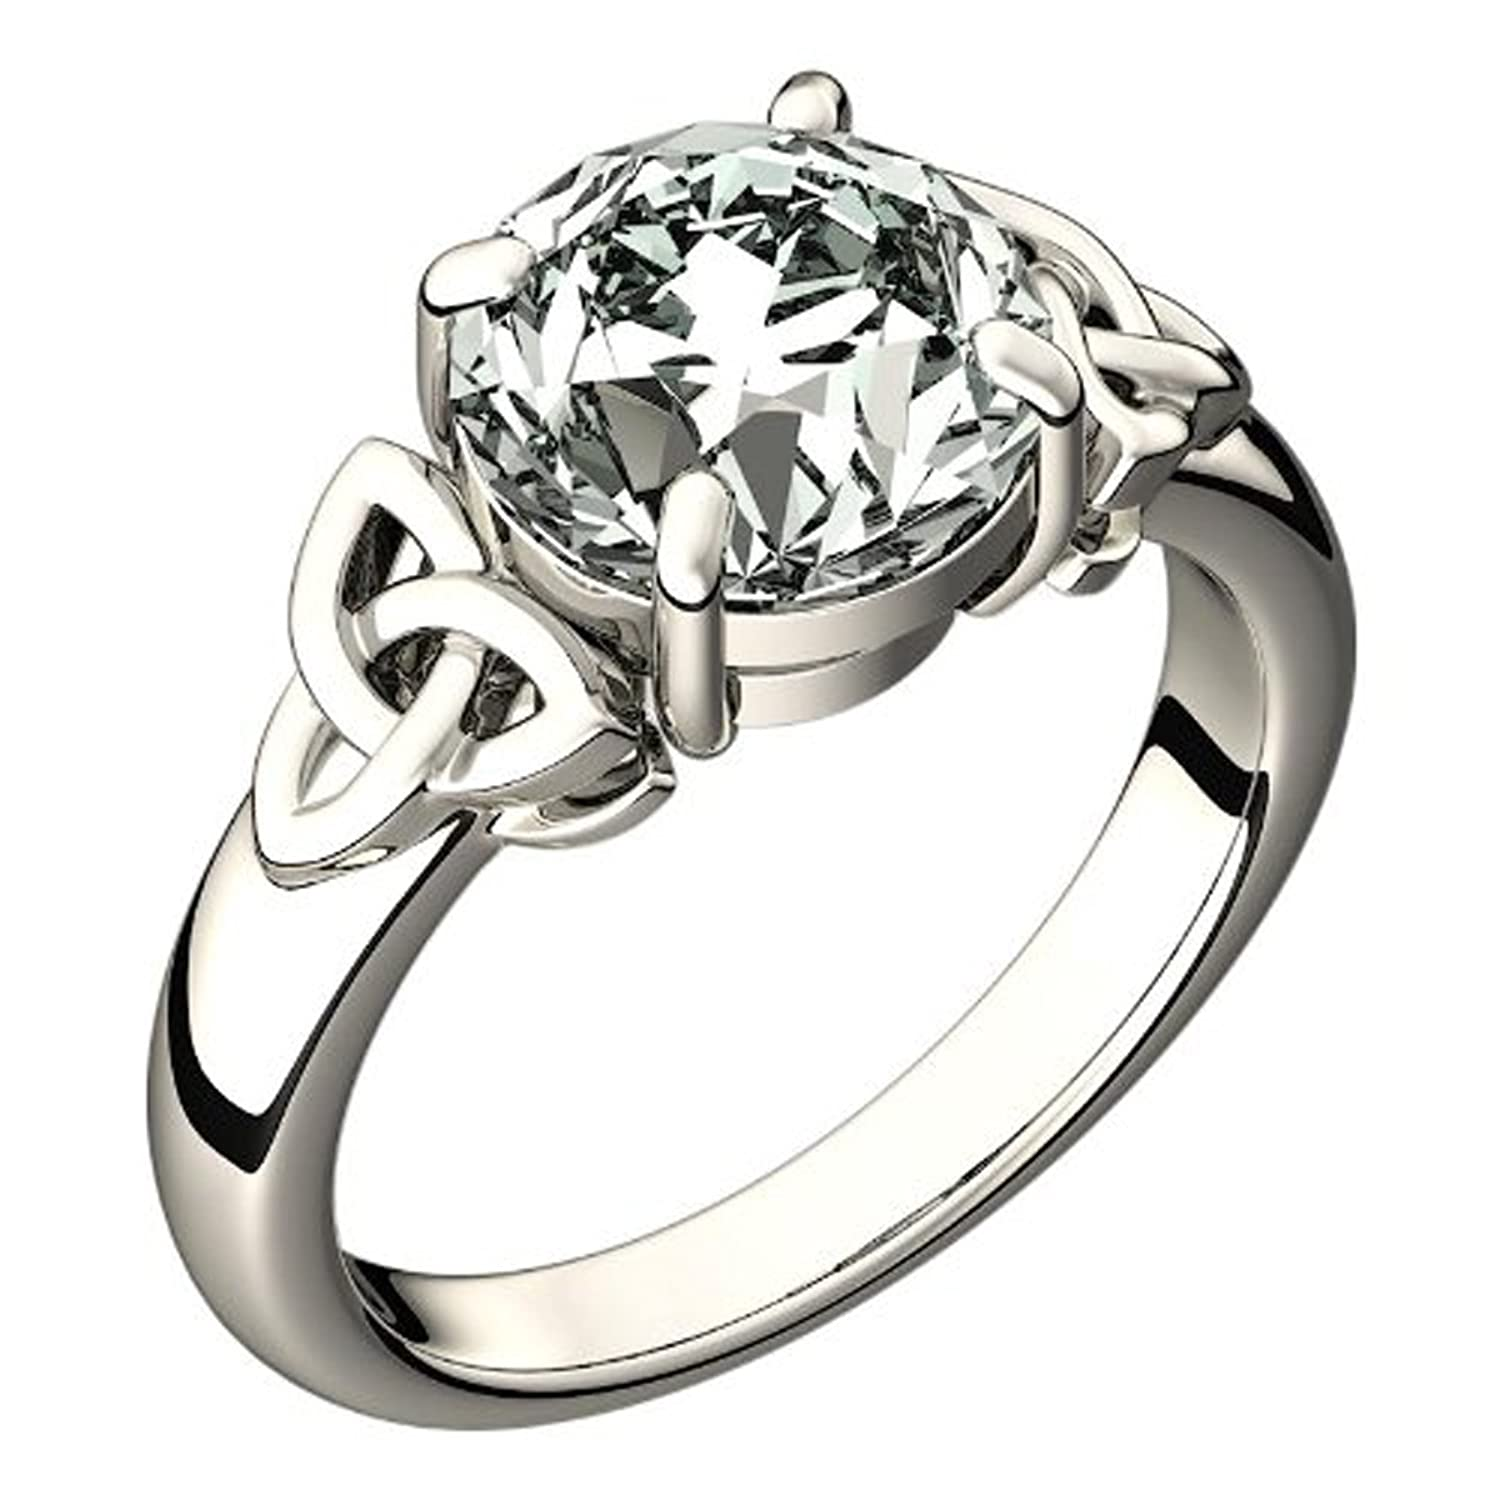 wedding a rings forever infinity celtic knot engagement bling ps jewelry ring silver figure trinity triquetra